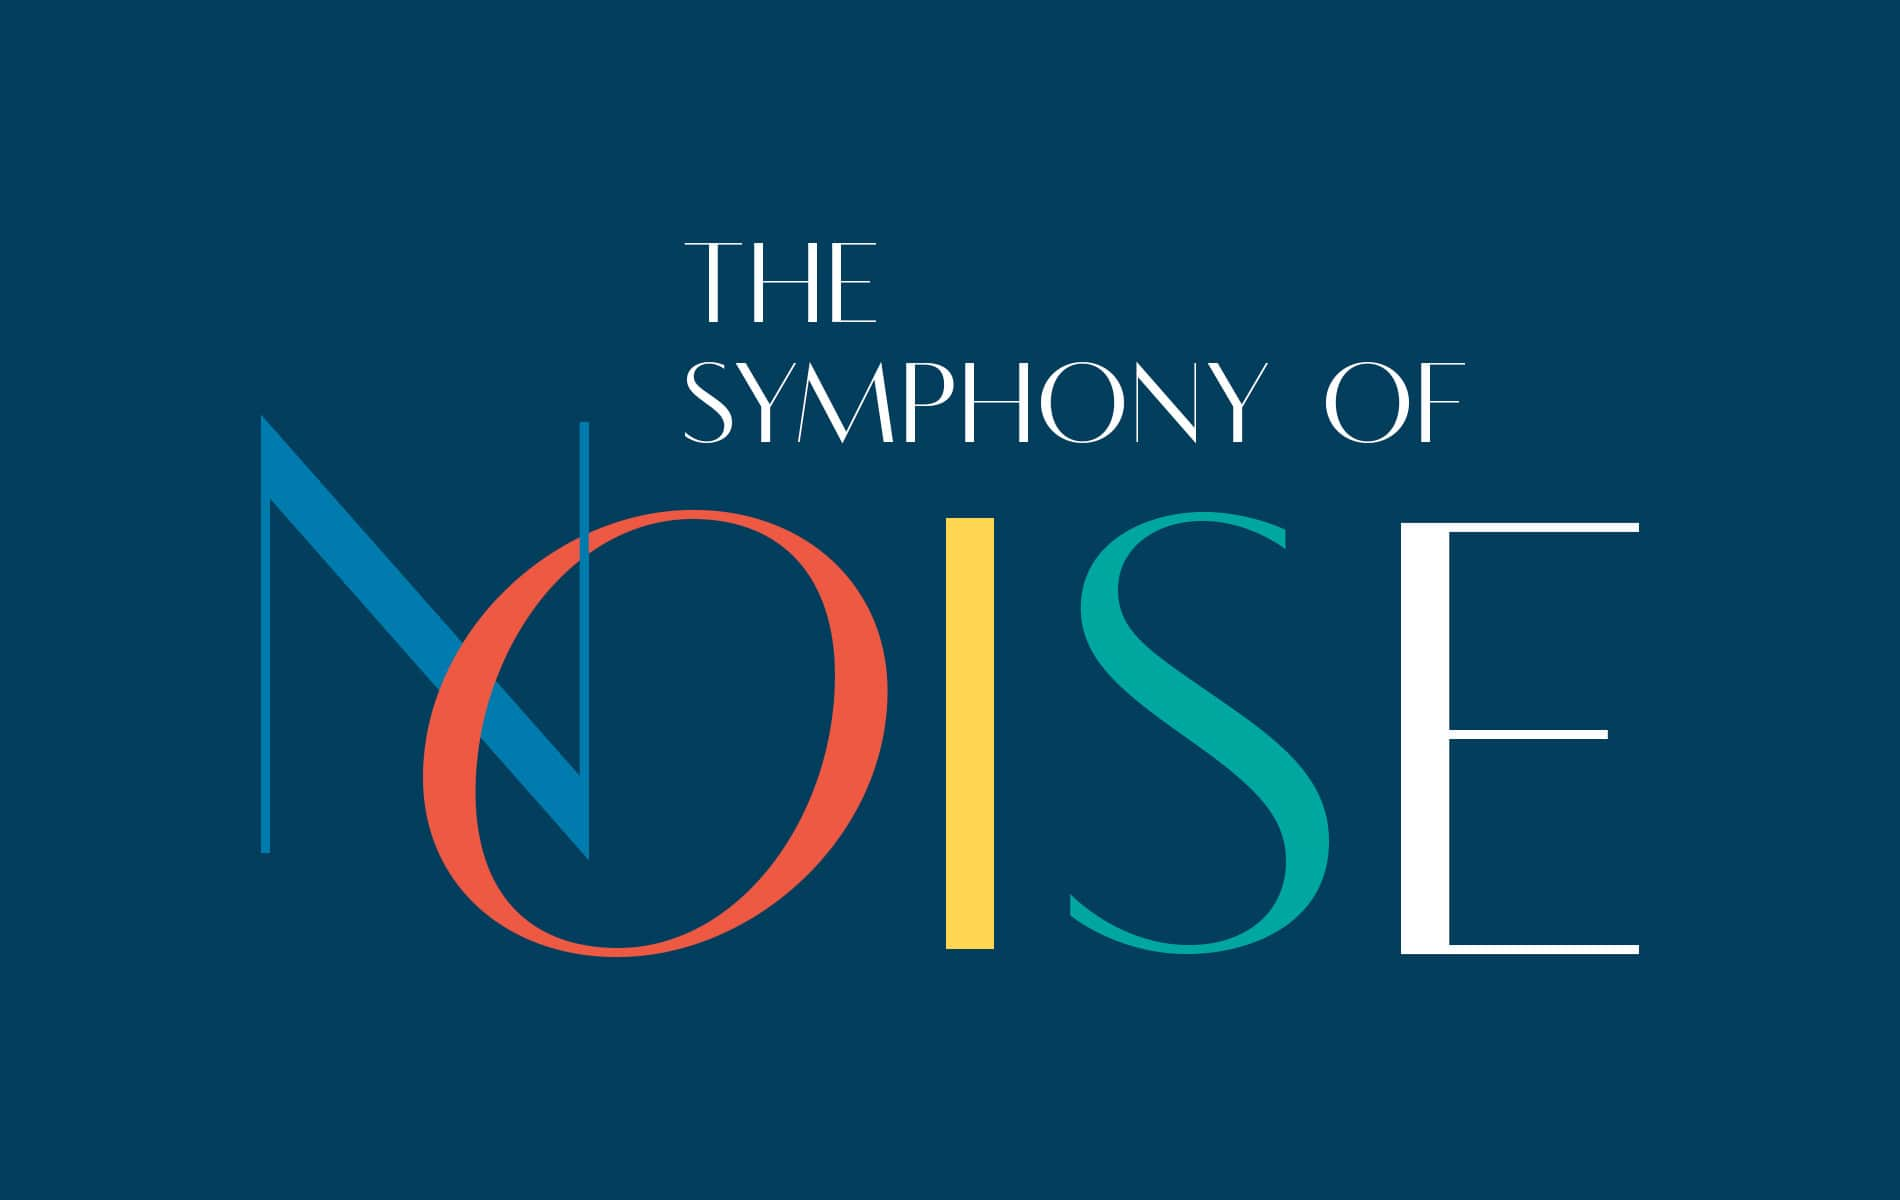 Nicholas S. Racheotes Column July 2019 Art & Artists Issue - The Symphony of Noise